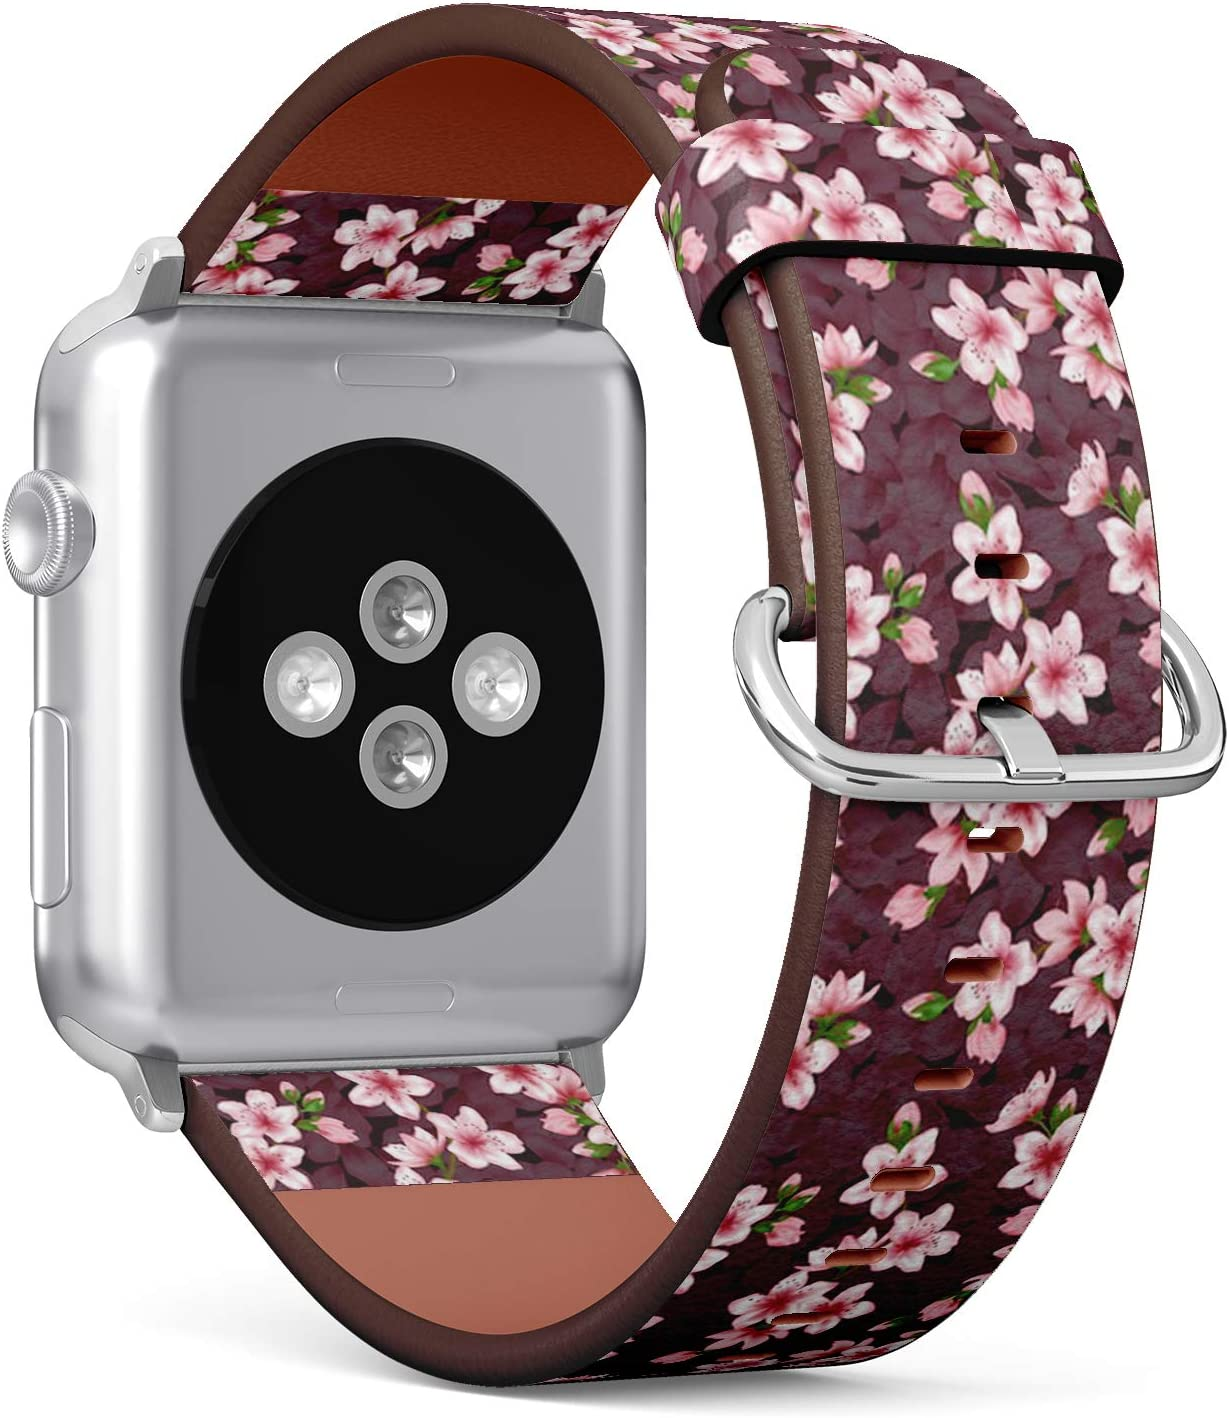 Compatible with Apple Watch iWatch (42/44 mm) Series 5, 4, 3, 2, 1 // Leather Replacement Bracelet Strap Wristband + Adapters // Japanese Cherry Blossom Image